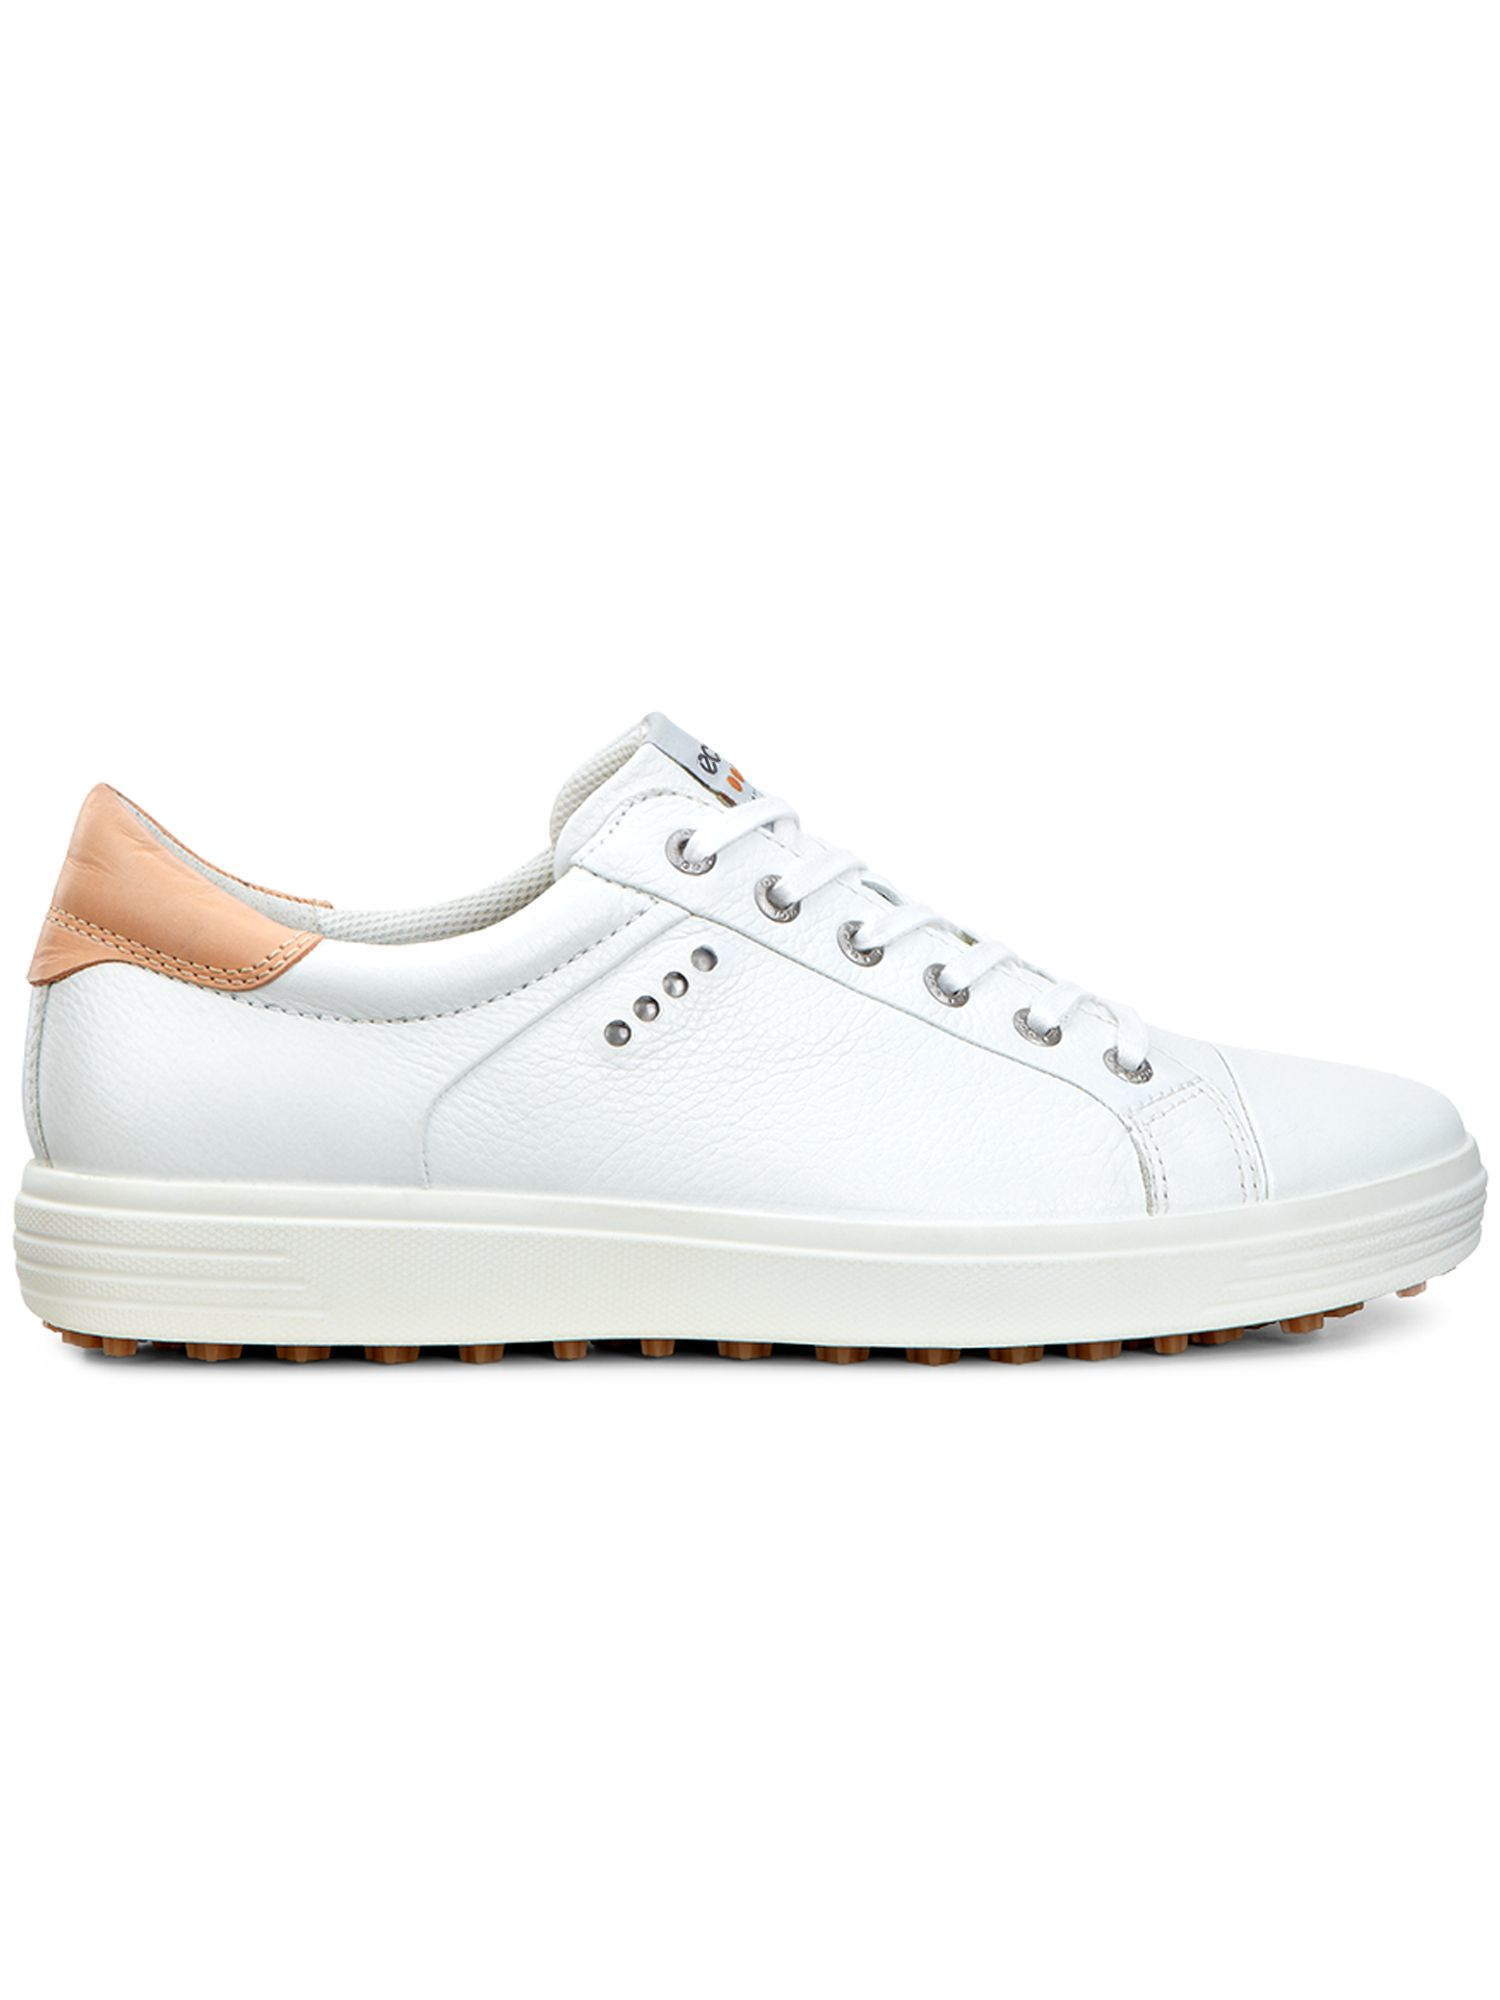 Ecco Golf Shoes Youth